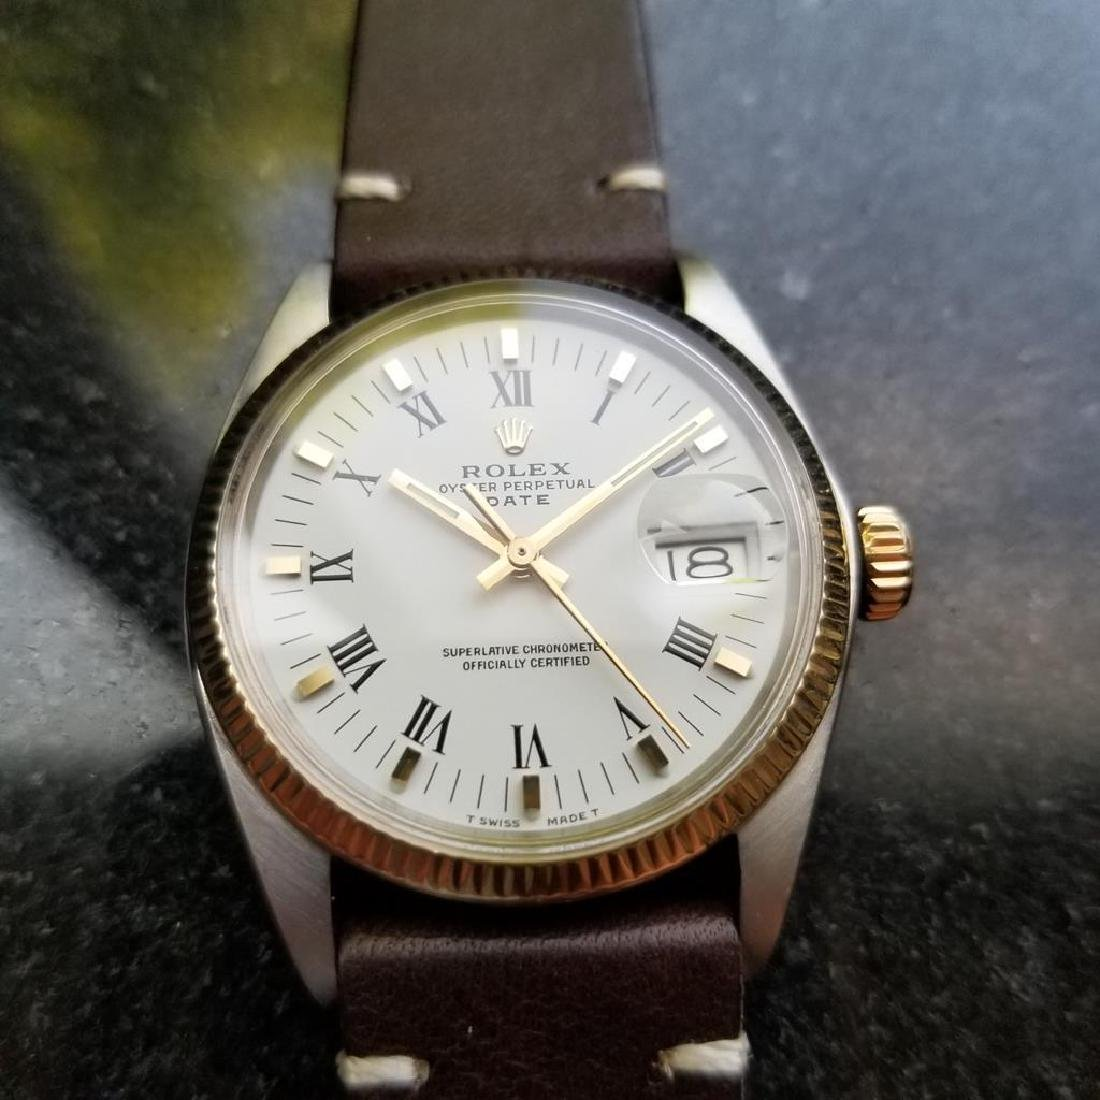 ROLEX Men's 18K Gold & SS Oyster Perpetual Date 1505 - 4